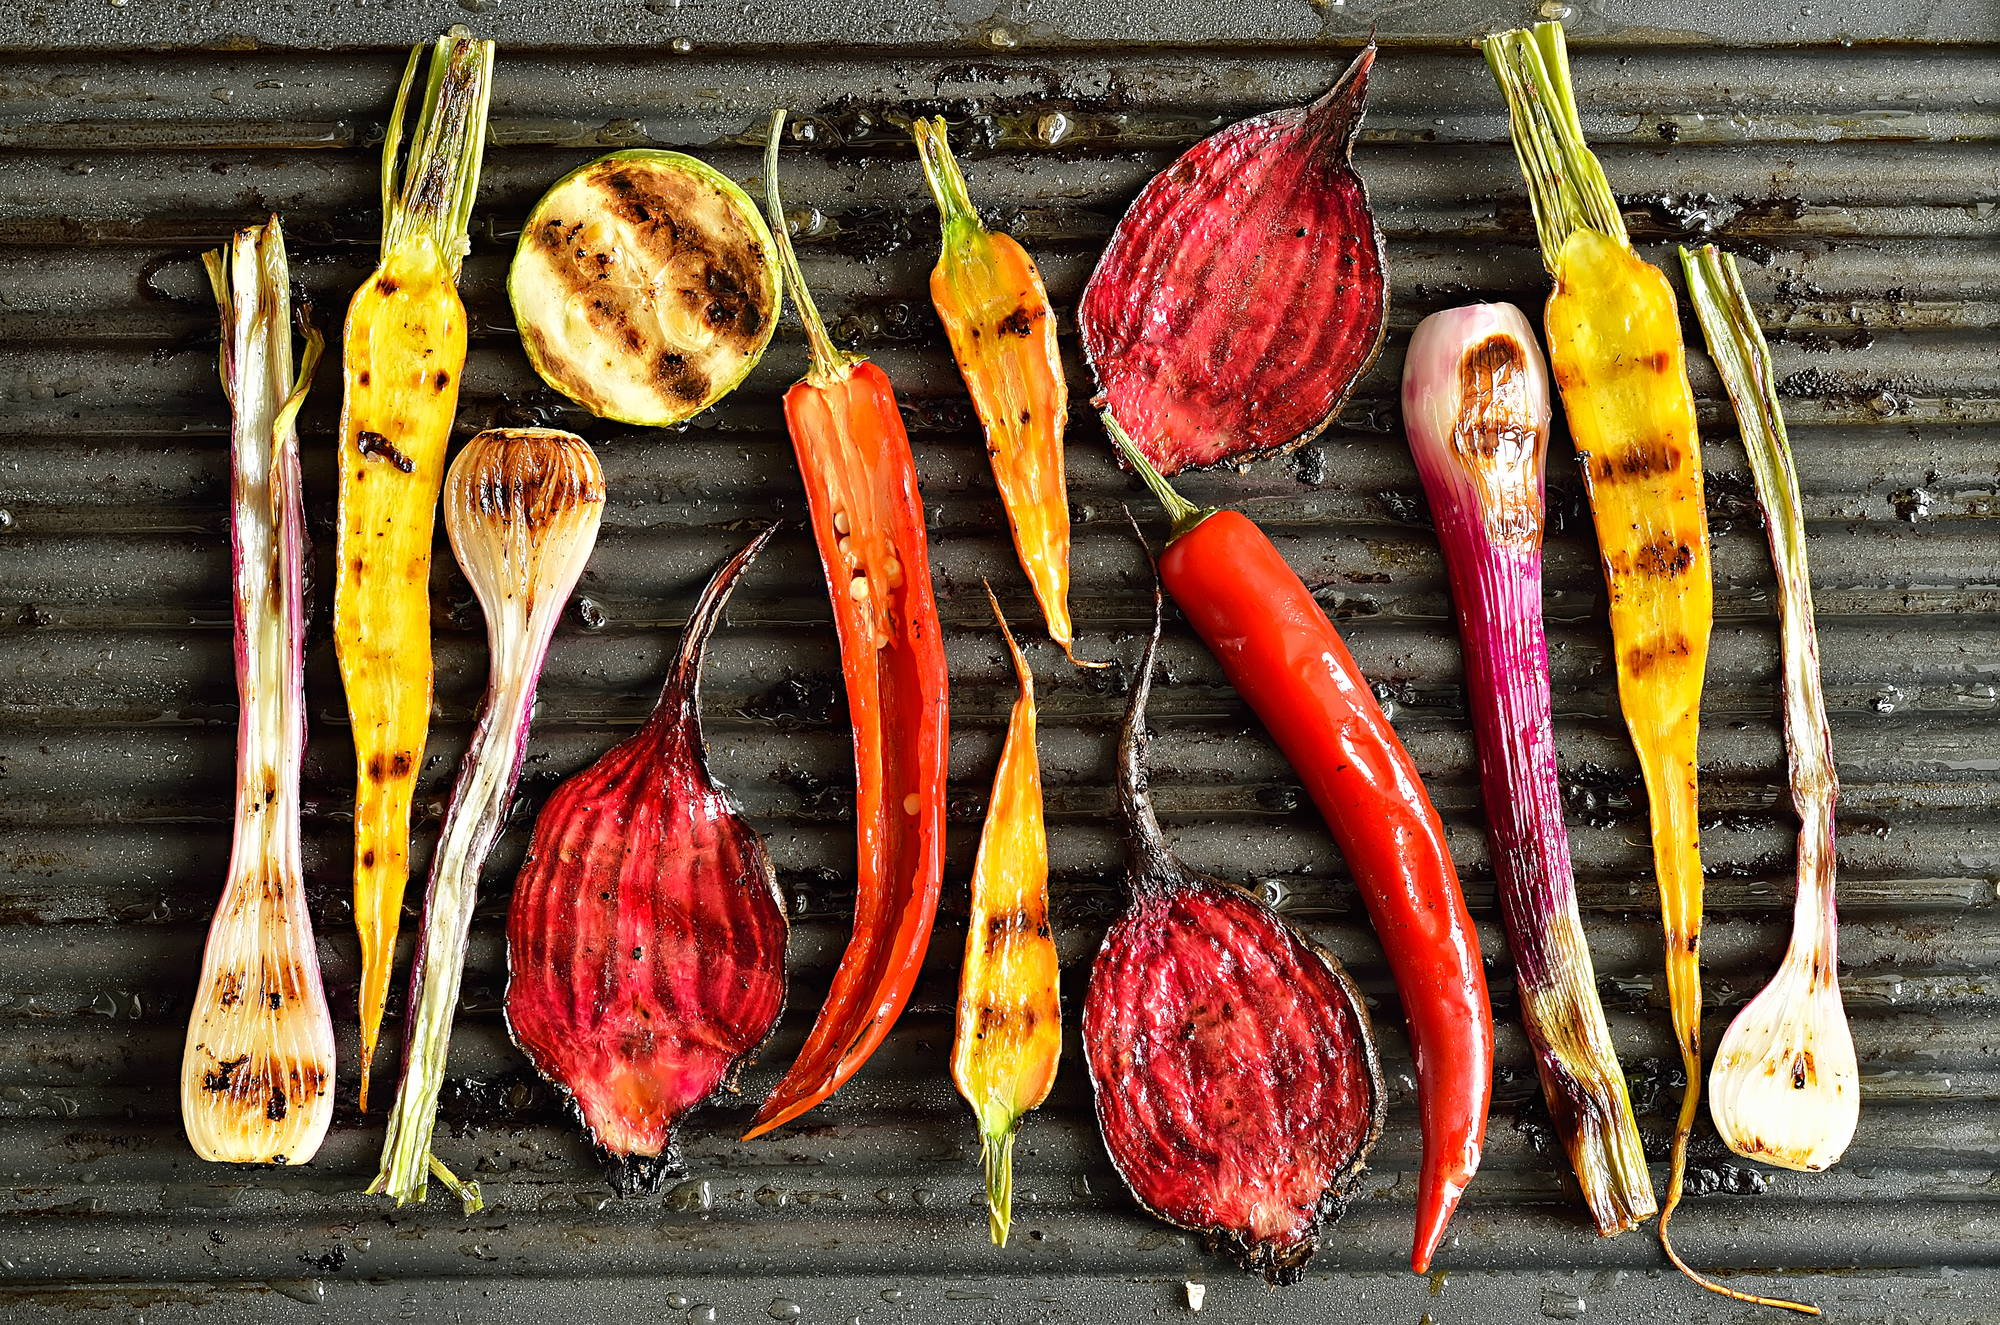 High Quality Organics Express Grilled Vegetables